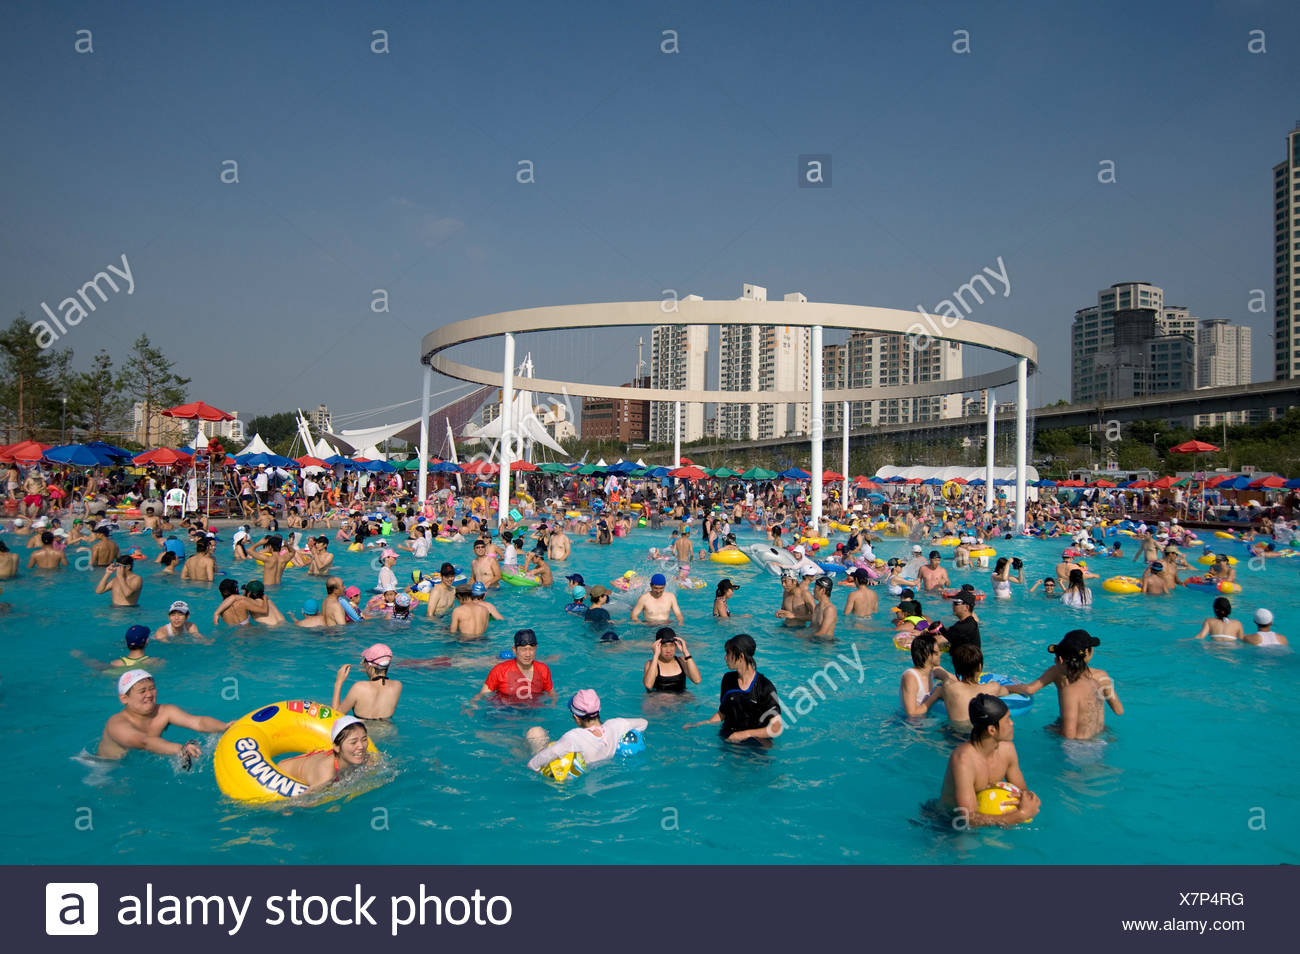 Throngs of people seek relief from the summer heat at the local pool. - Stock Image